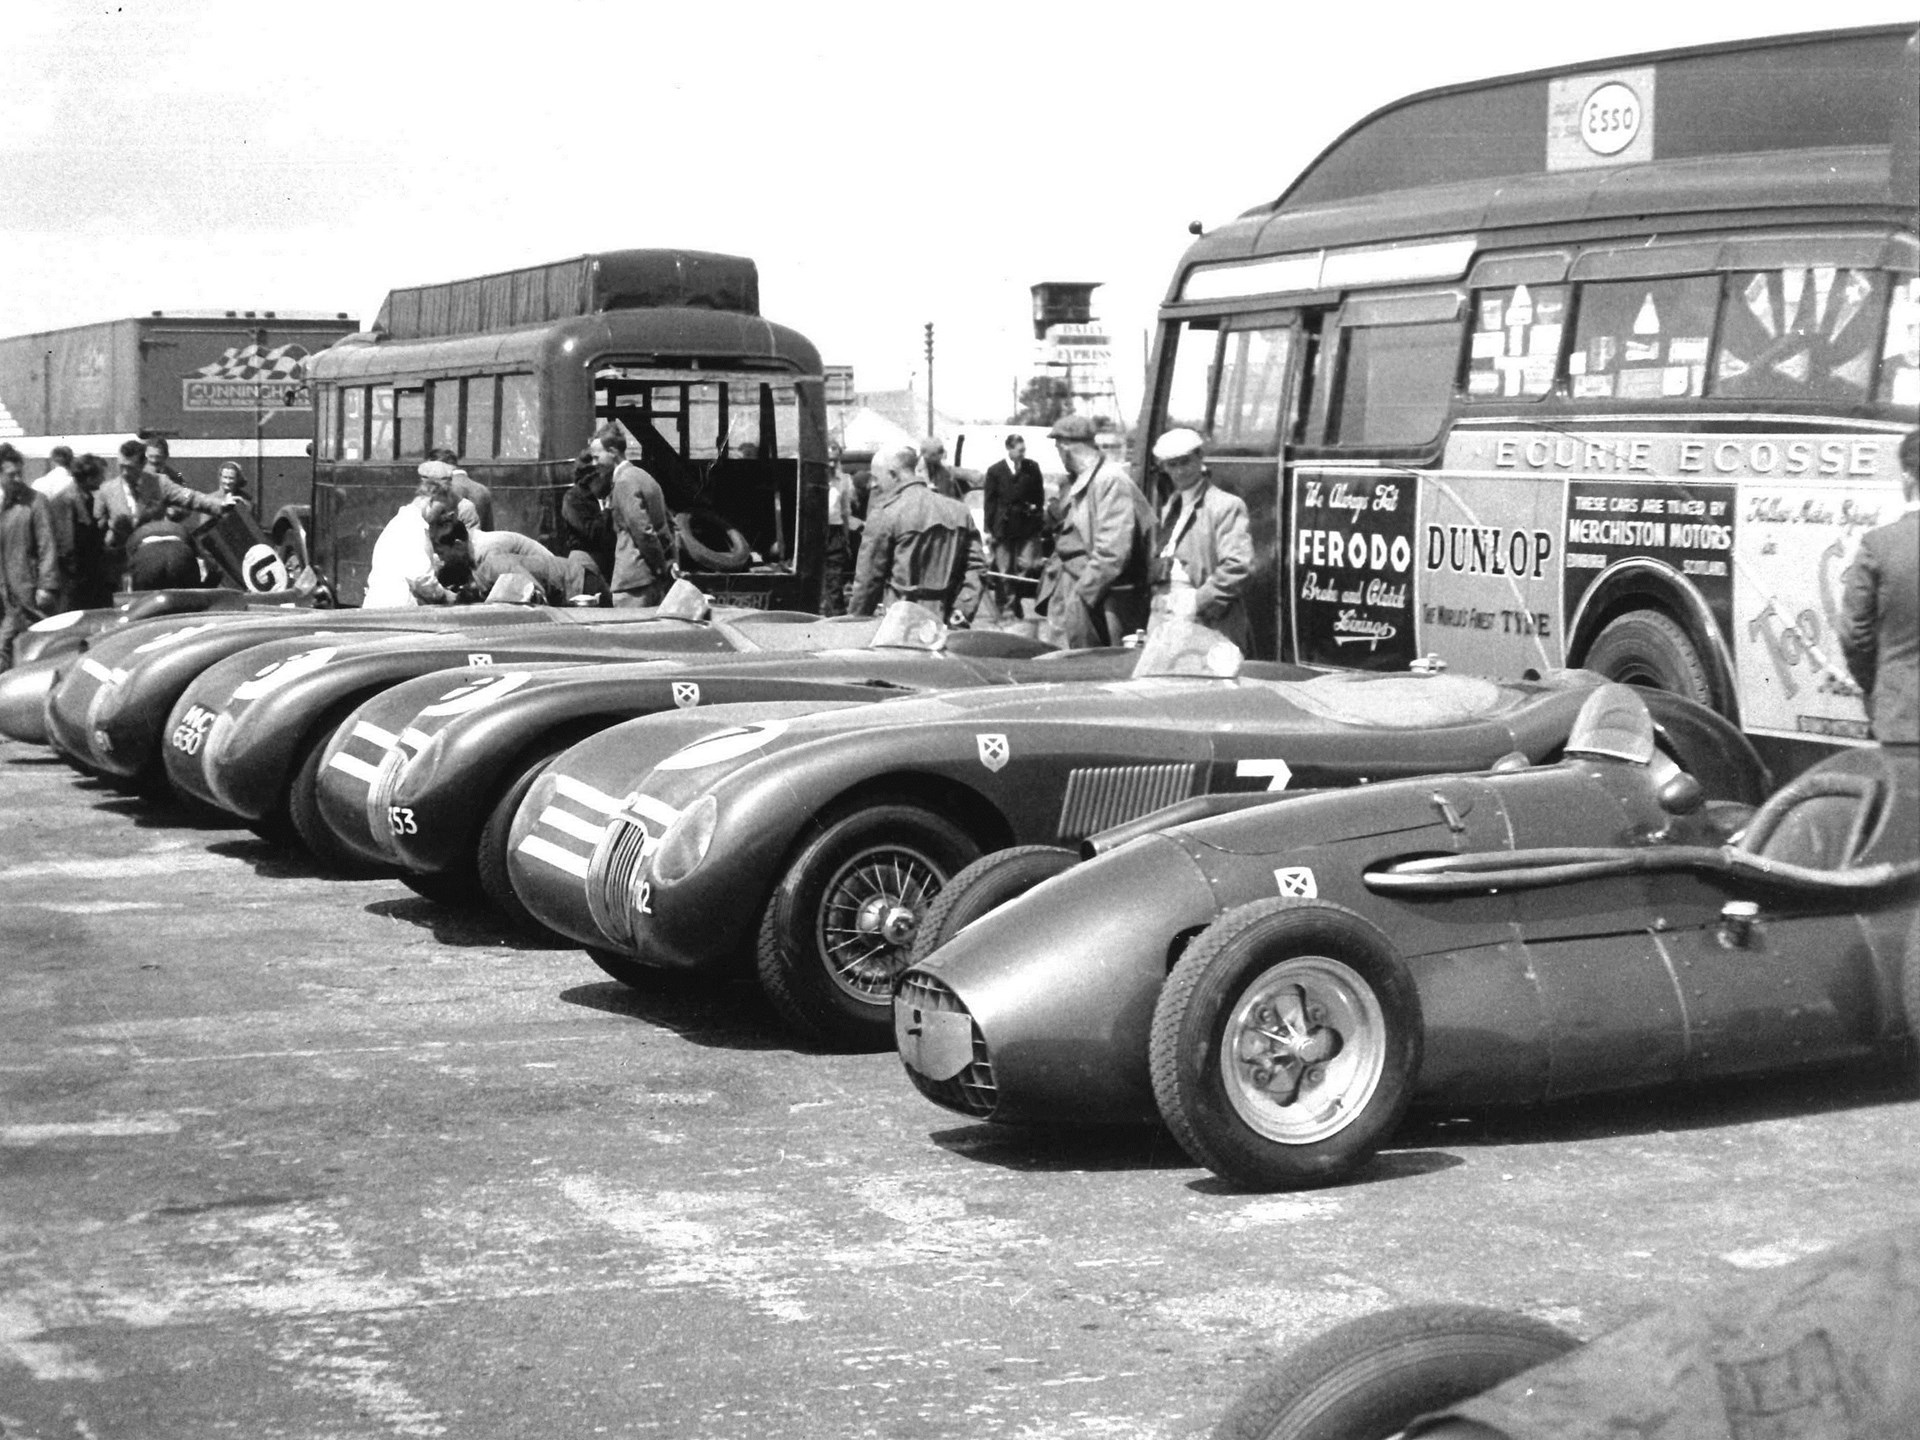 The Connaught alongside the rest of the Ecurie Ecosse team at the British GP Meeting in 1953.